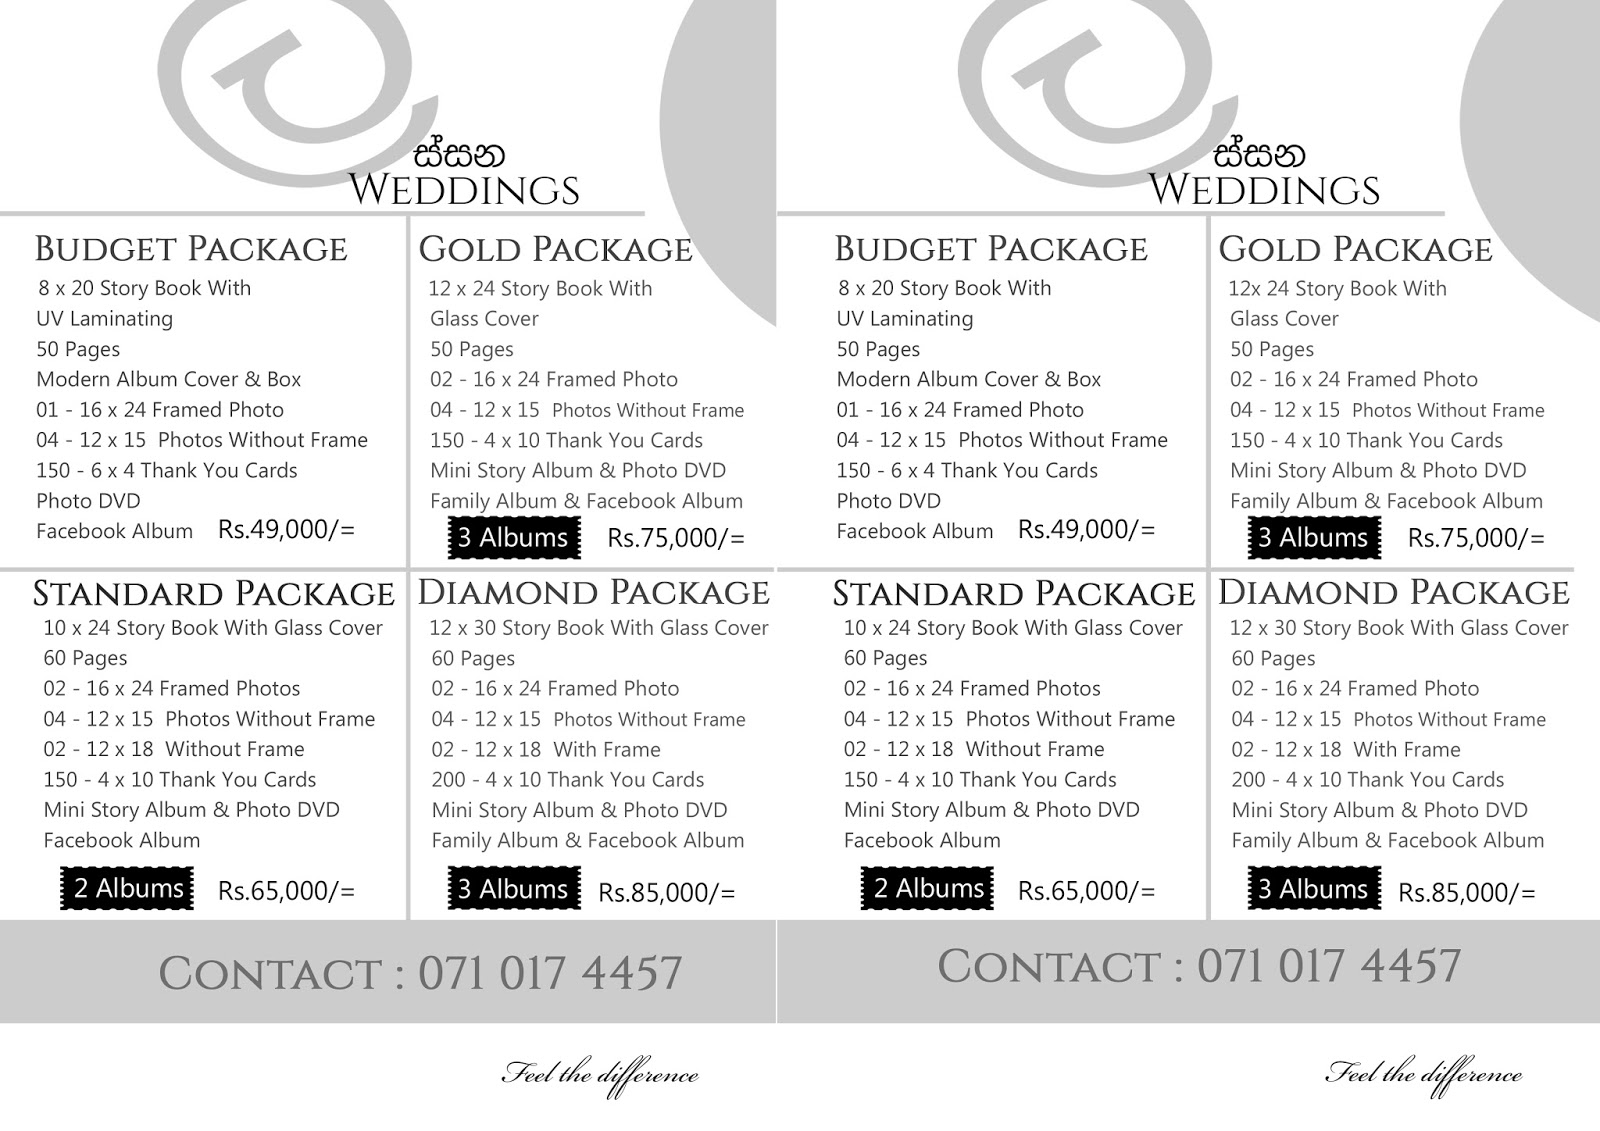 Lana Weddings Photography Offers Many Customer Friendly Handy Packages We Think Mostly About Client S Budget So You Can Tell Your Sweet Story How To Be